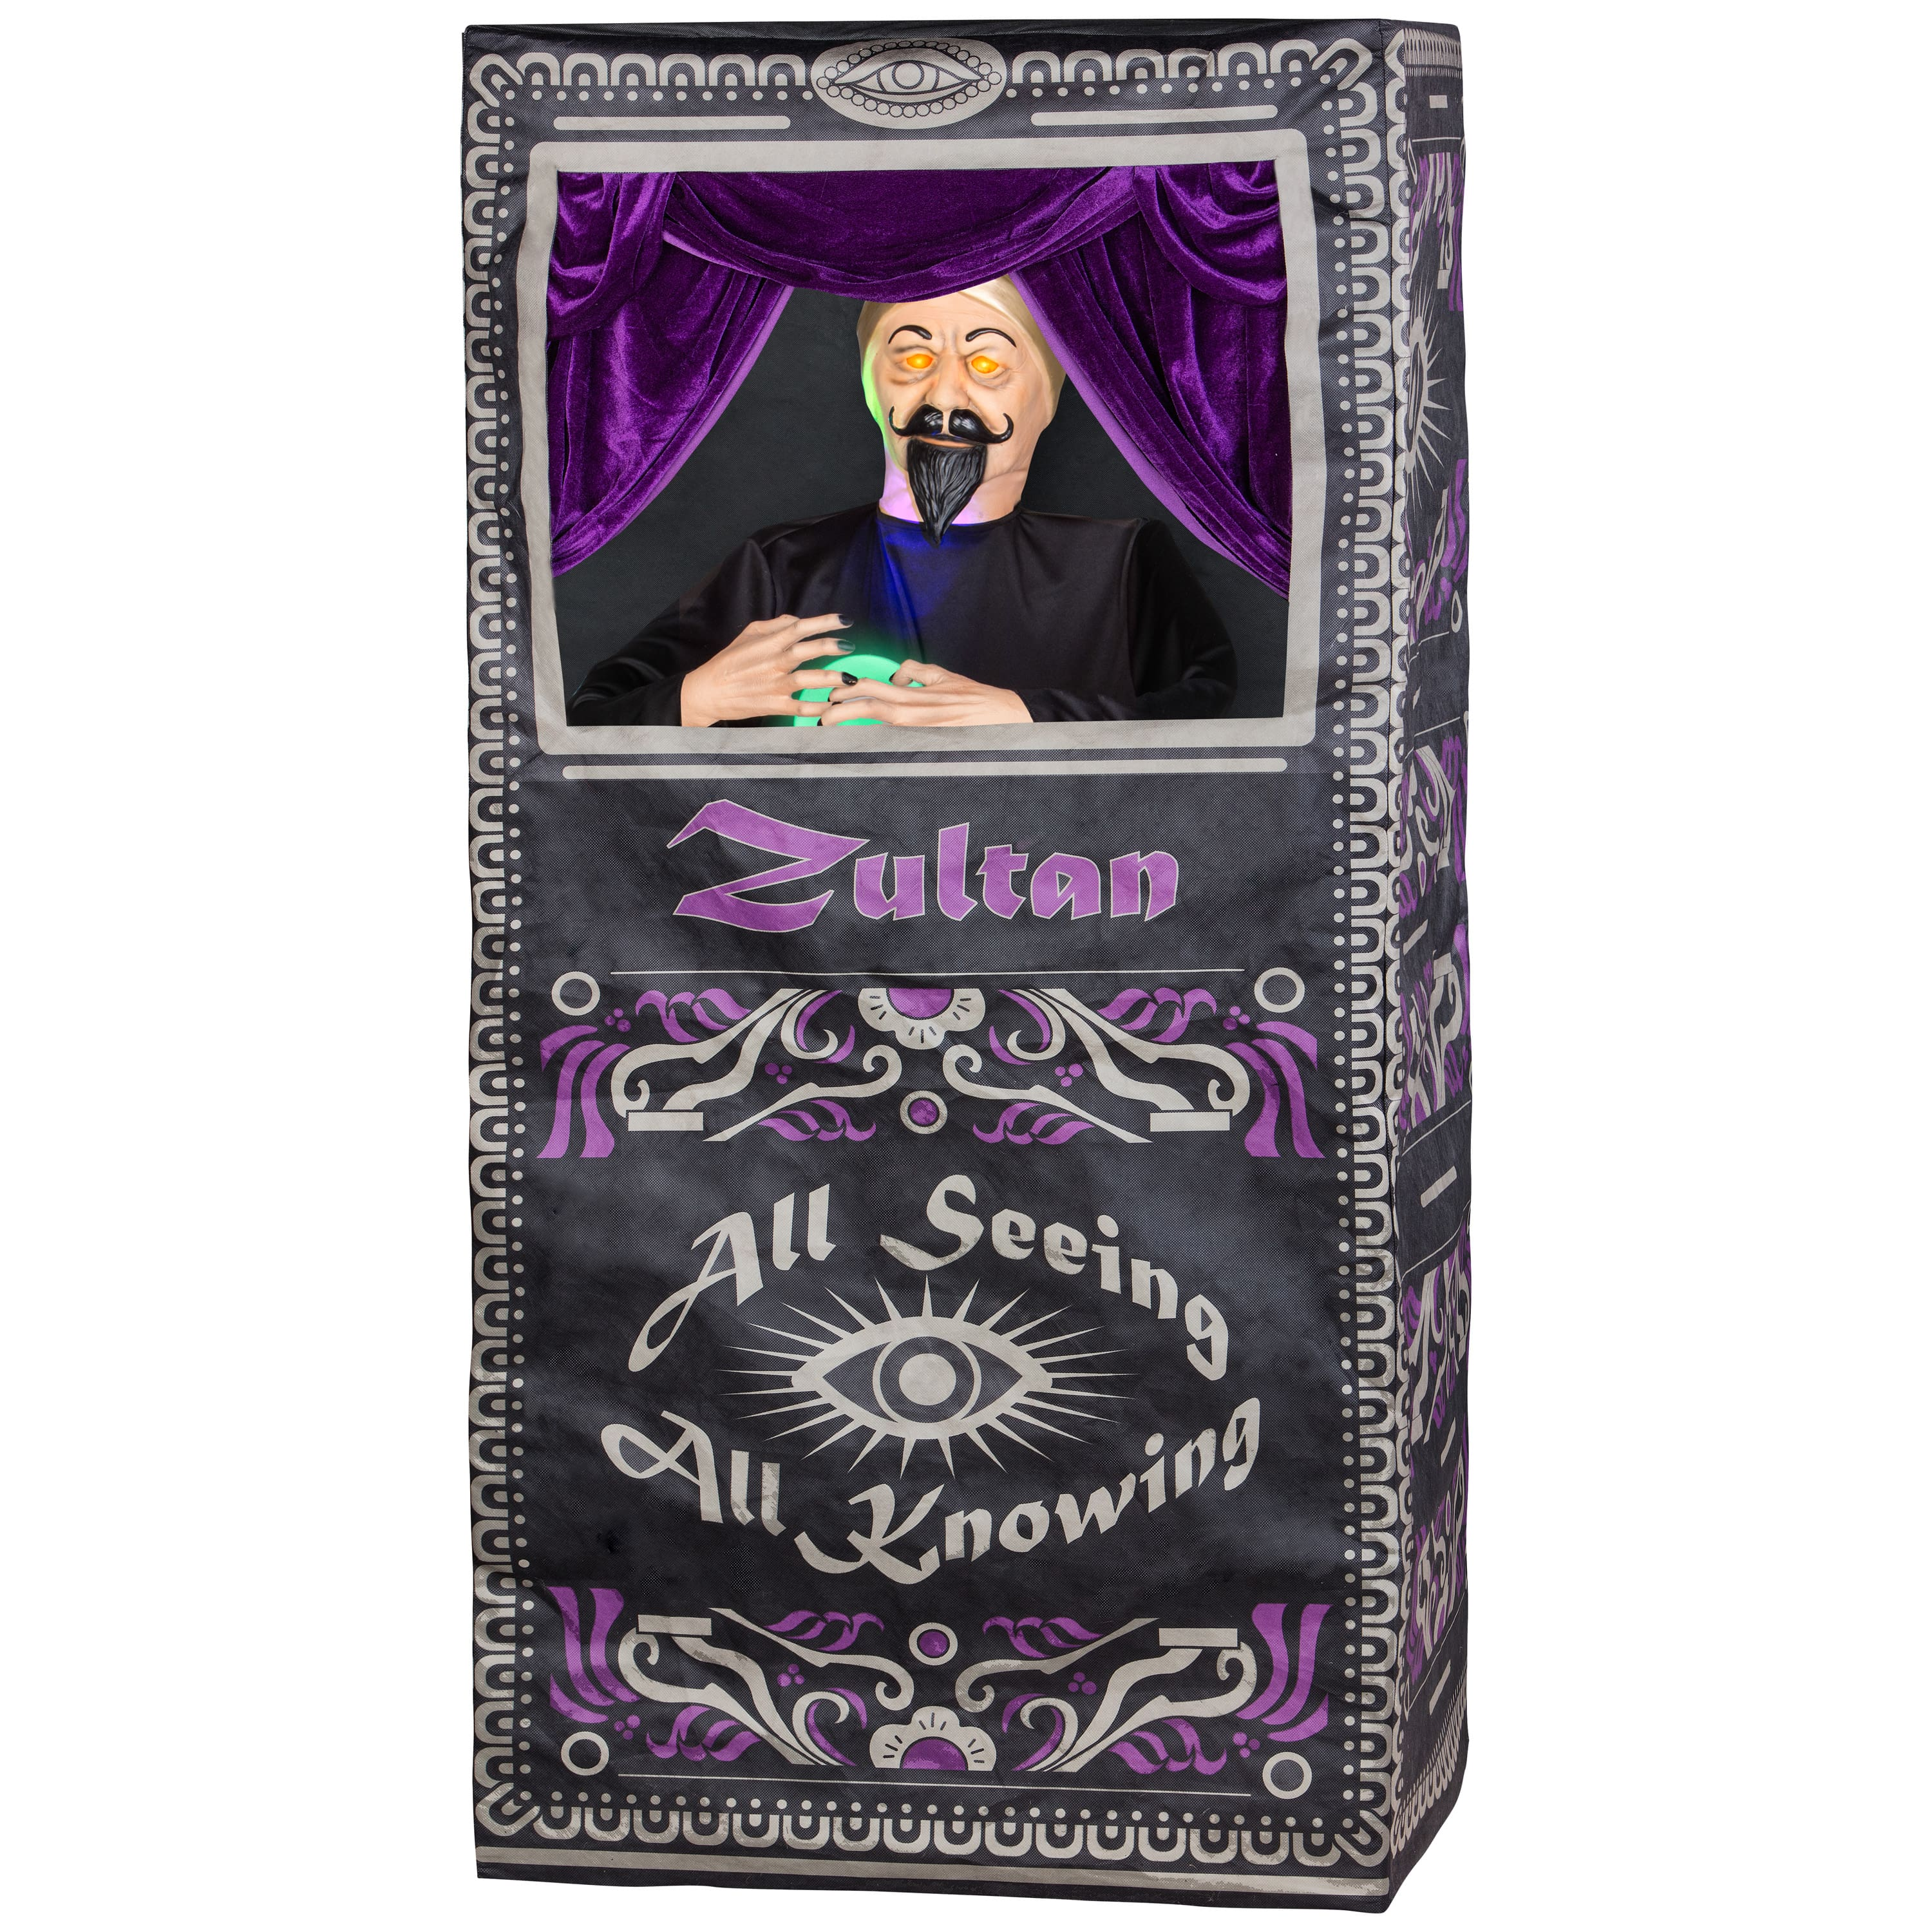 Lowes Holiday Living Animated Fortune Teller in Box  $75 & more Free Shipping 10-4-18 only